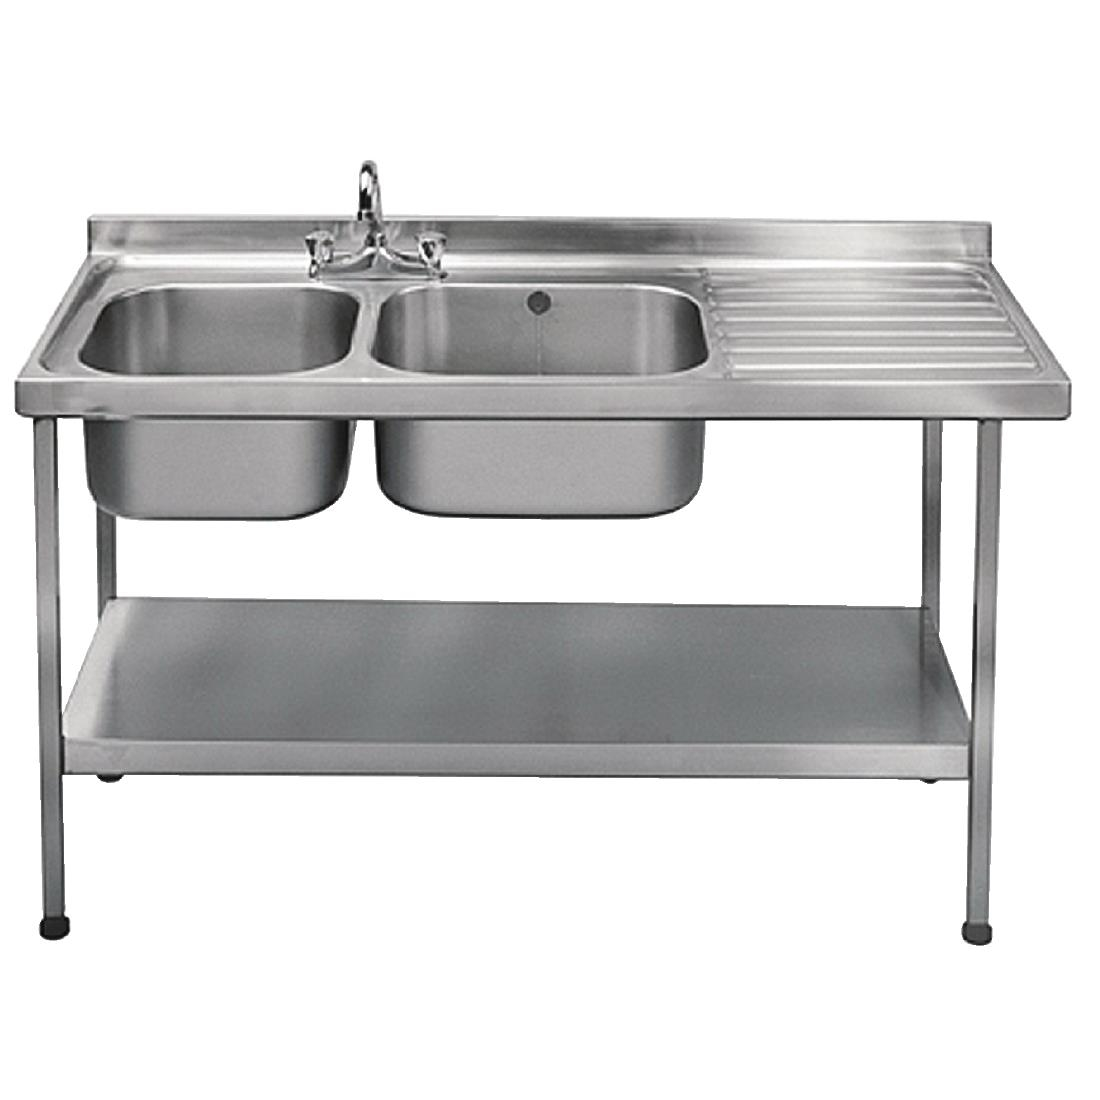 ... Franke Sissons Self Assembly Stainless Steel Double Sink